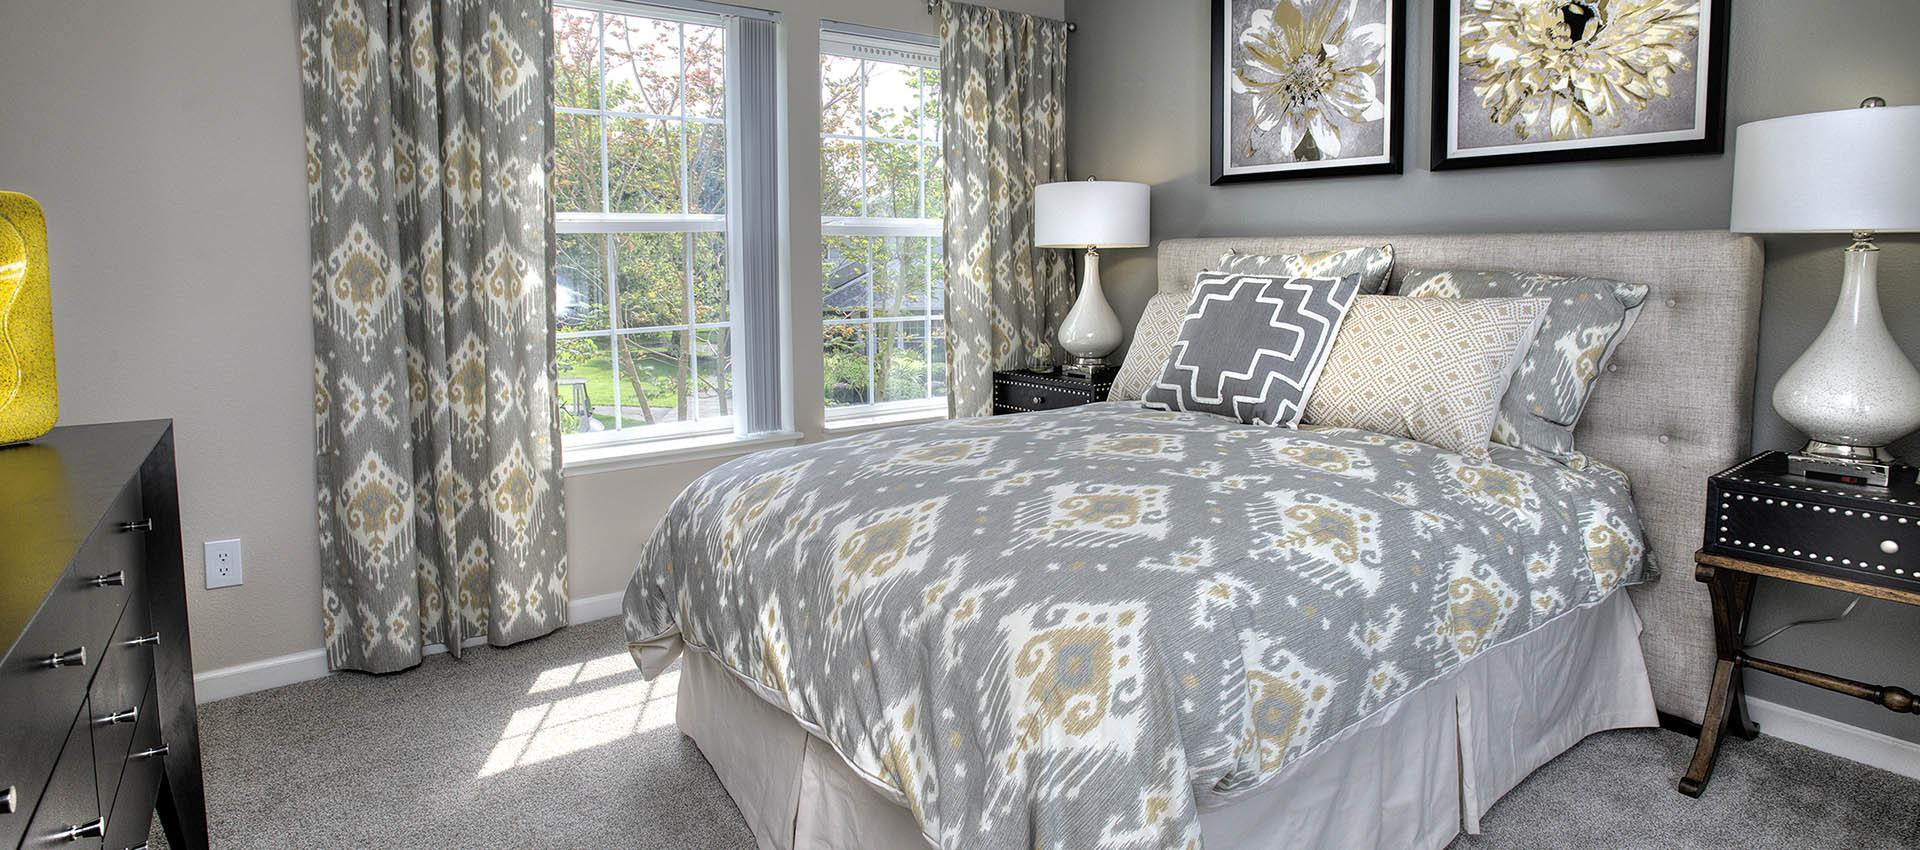 Bedroom at Slate Ridge at Fisher's Landing Apartment Homes in Vancouver, WA